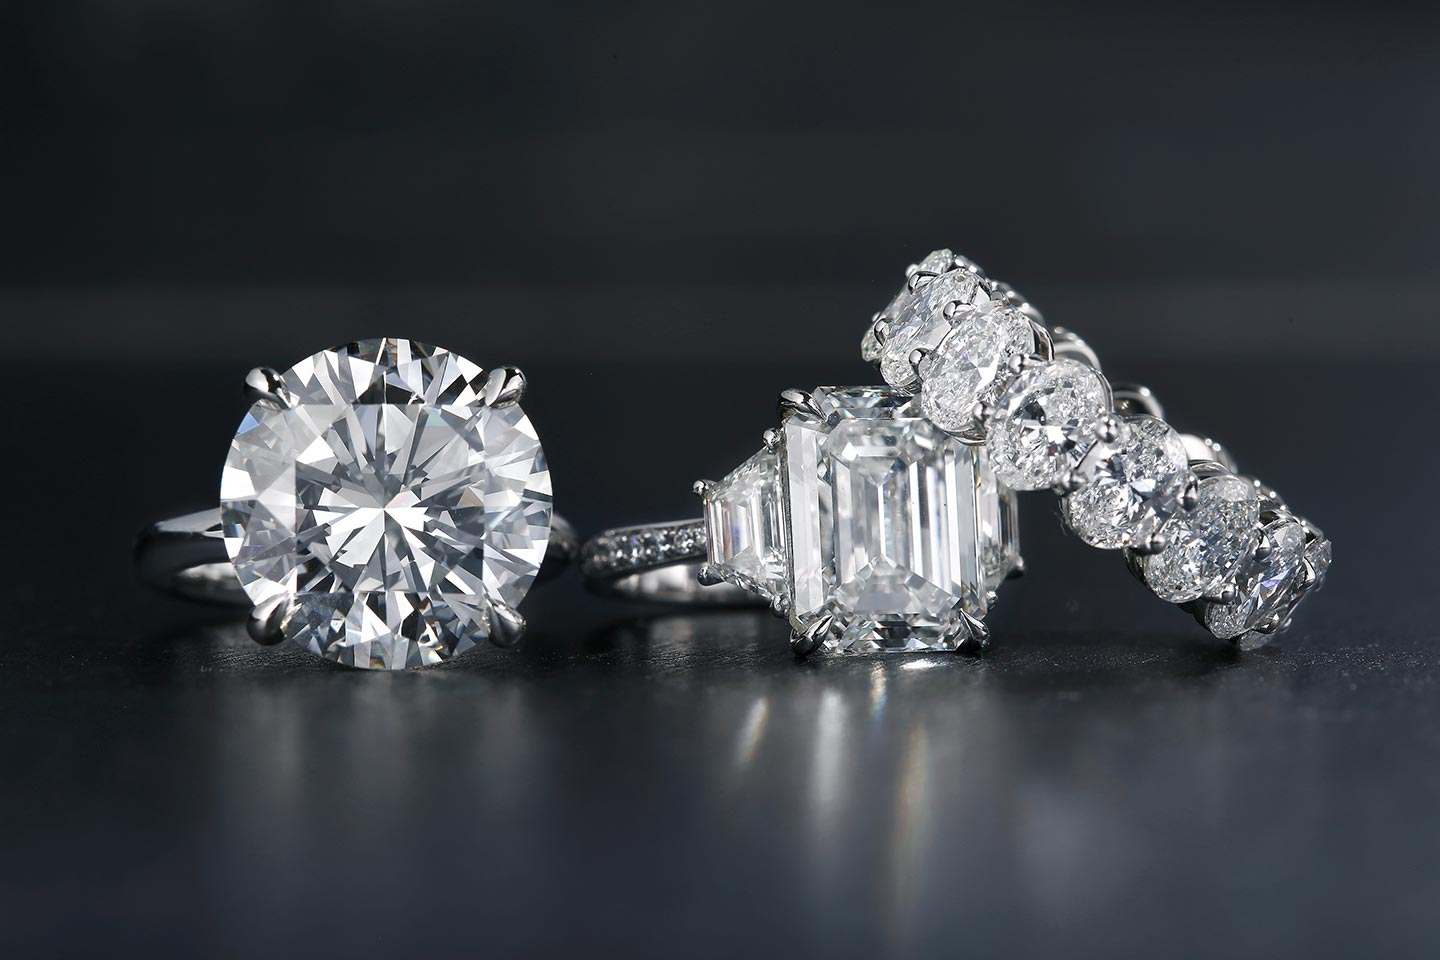 Diamond Jewelry stacked against a black background